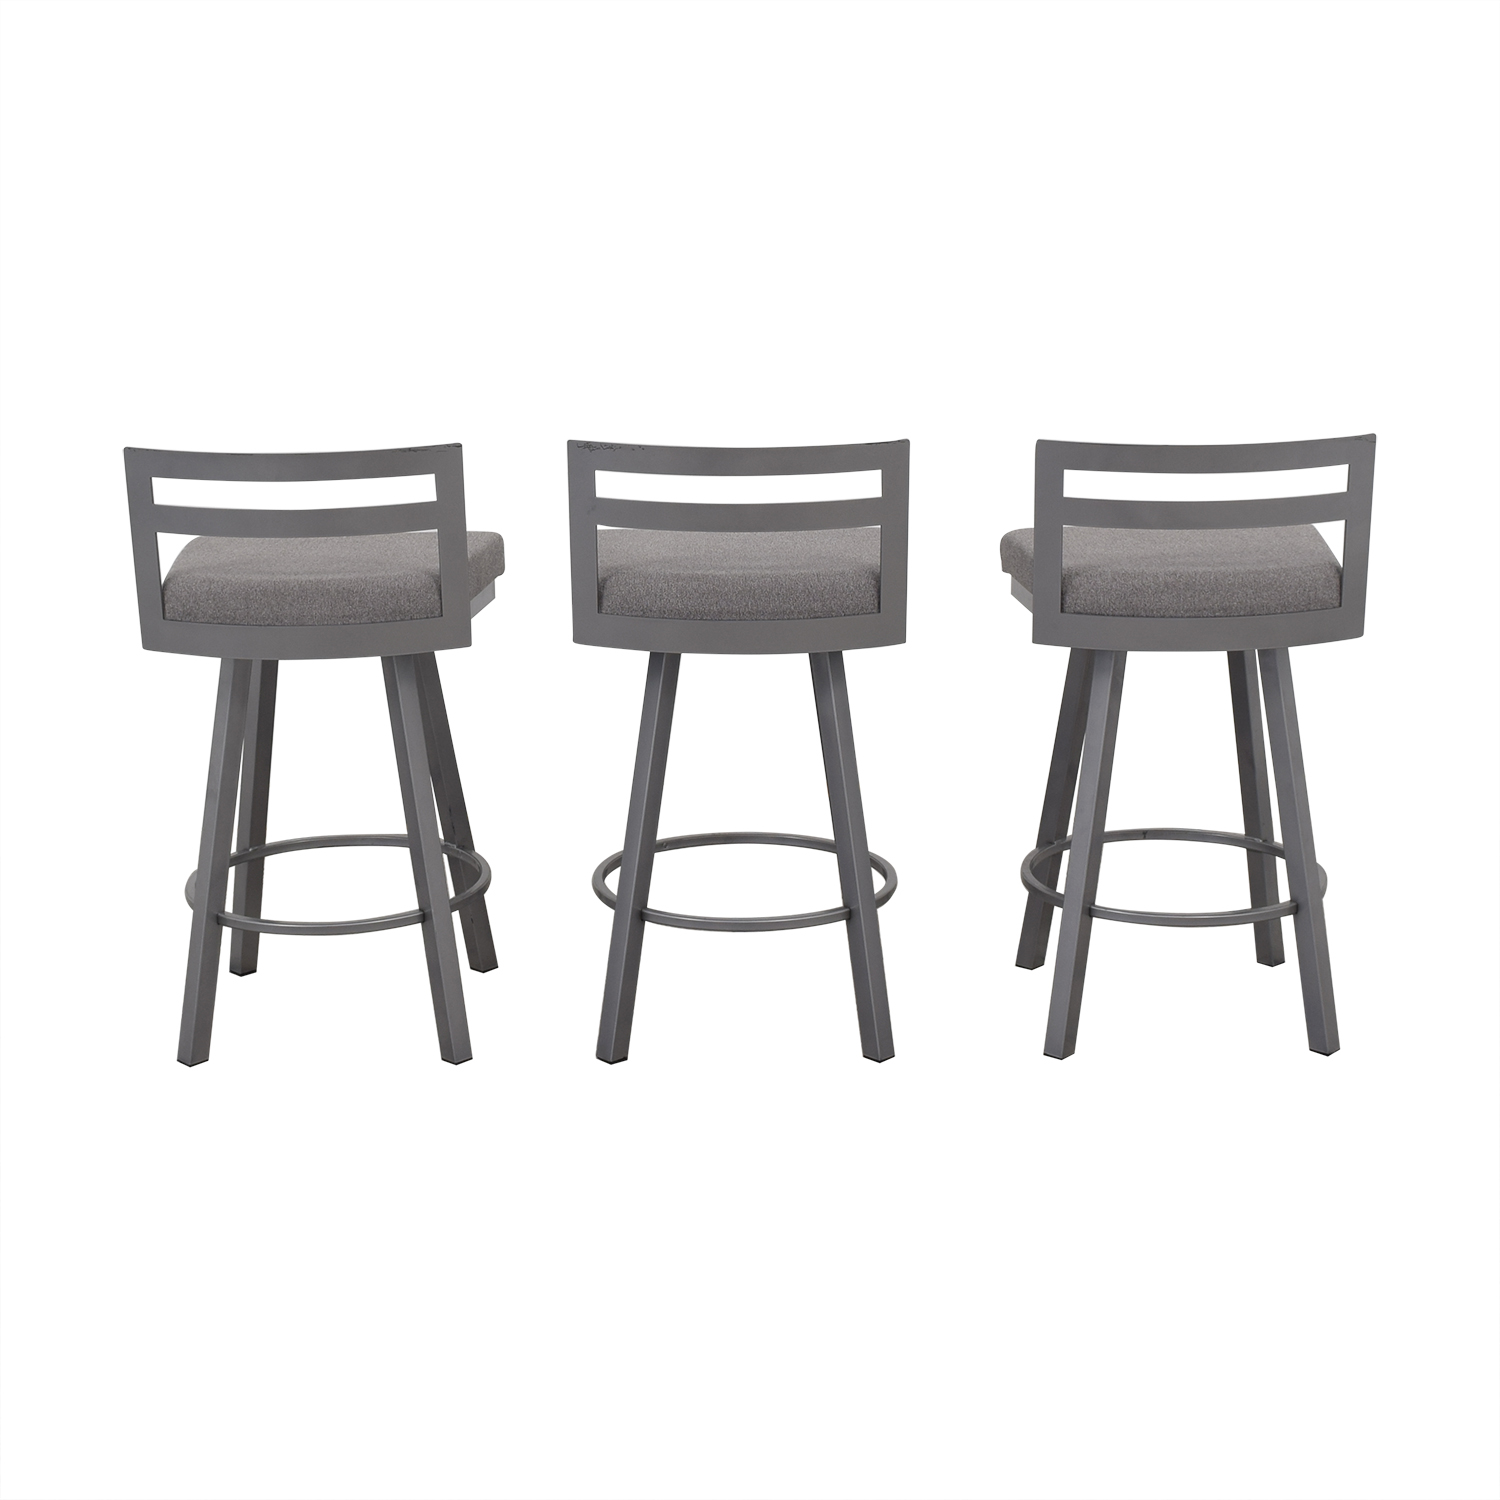 Enjoyable 60 Off Amisco Amisco Derek Swivel Counter Stools Chairs Alphanode Cool Chair Designs And Ideas Alphanodeonline